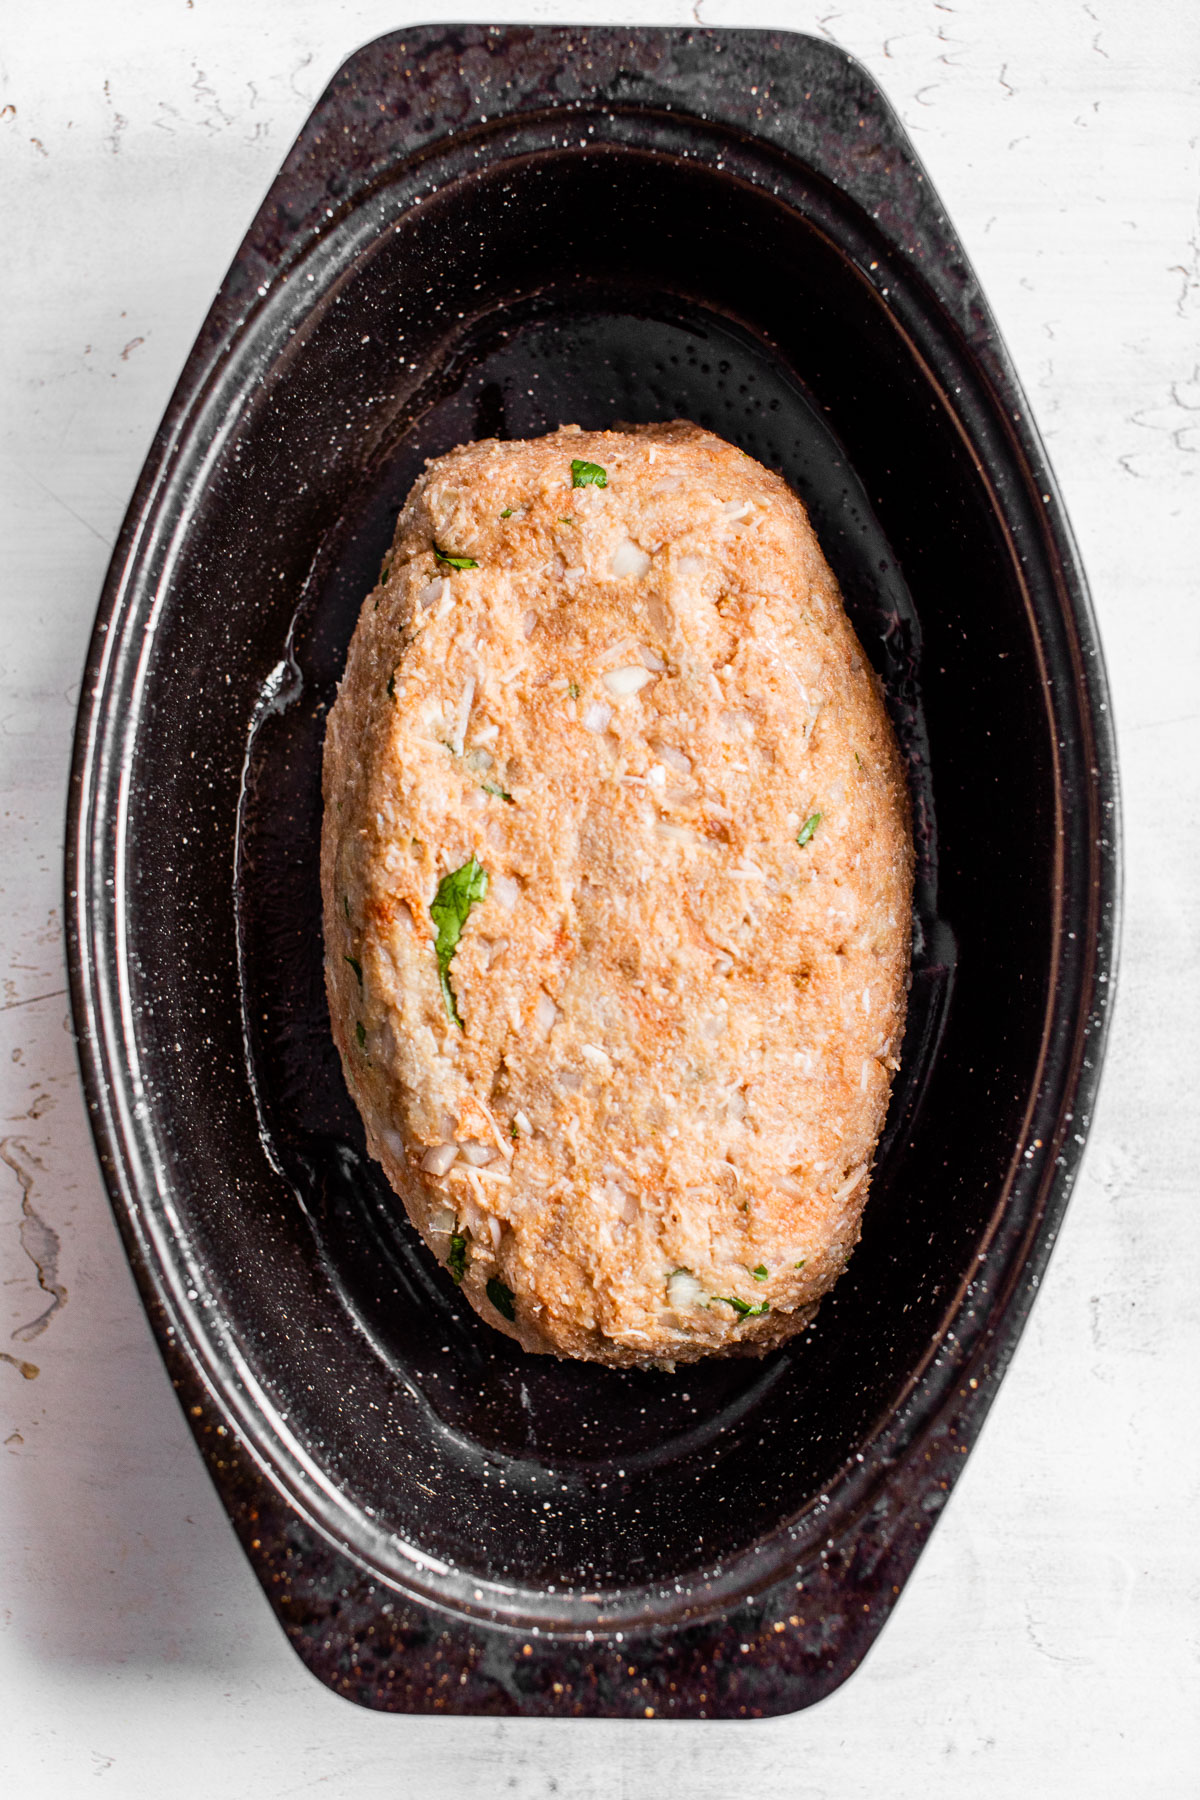 uncooked meatloaf in a baking dish